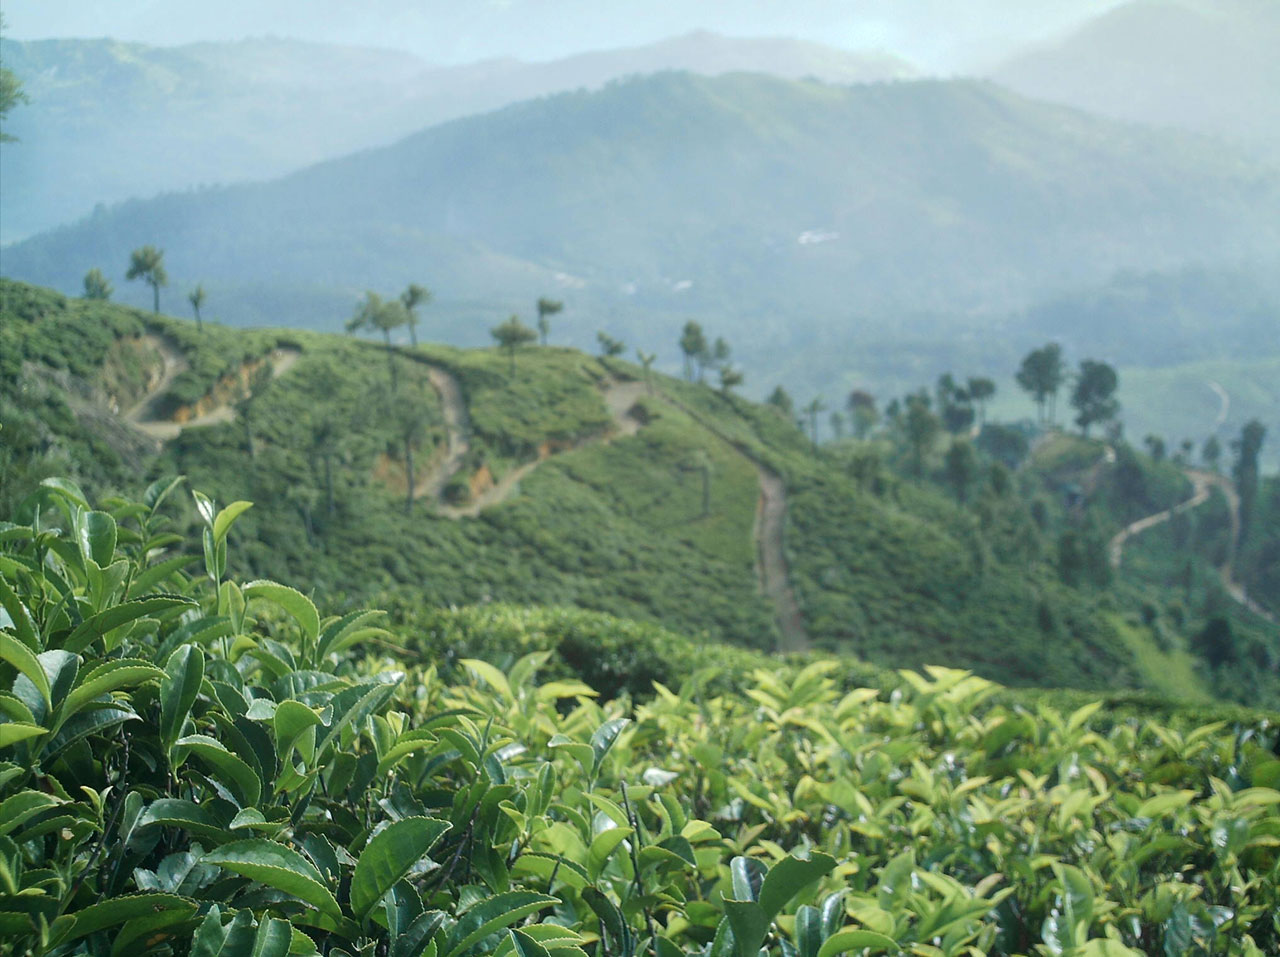 Tea plantation-credit-Chaminda Bandara-http://www.publicdomainpictures.net/view-image.php?image=2485&picture=tea-estate&large=1